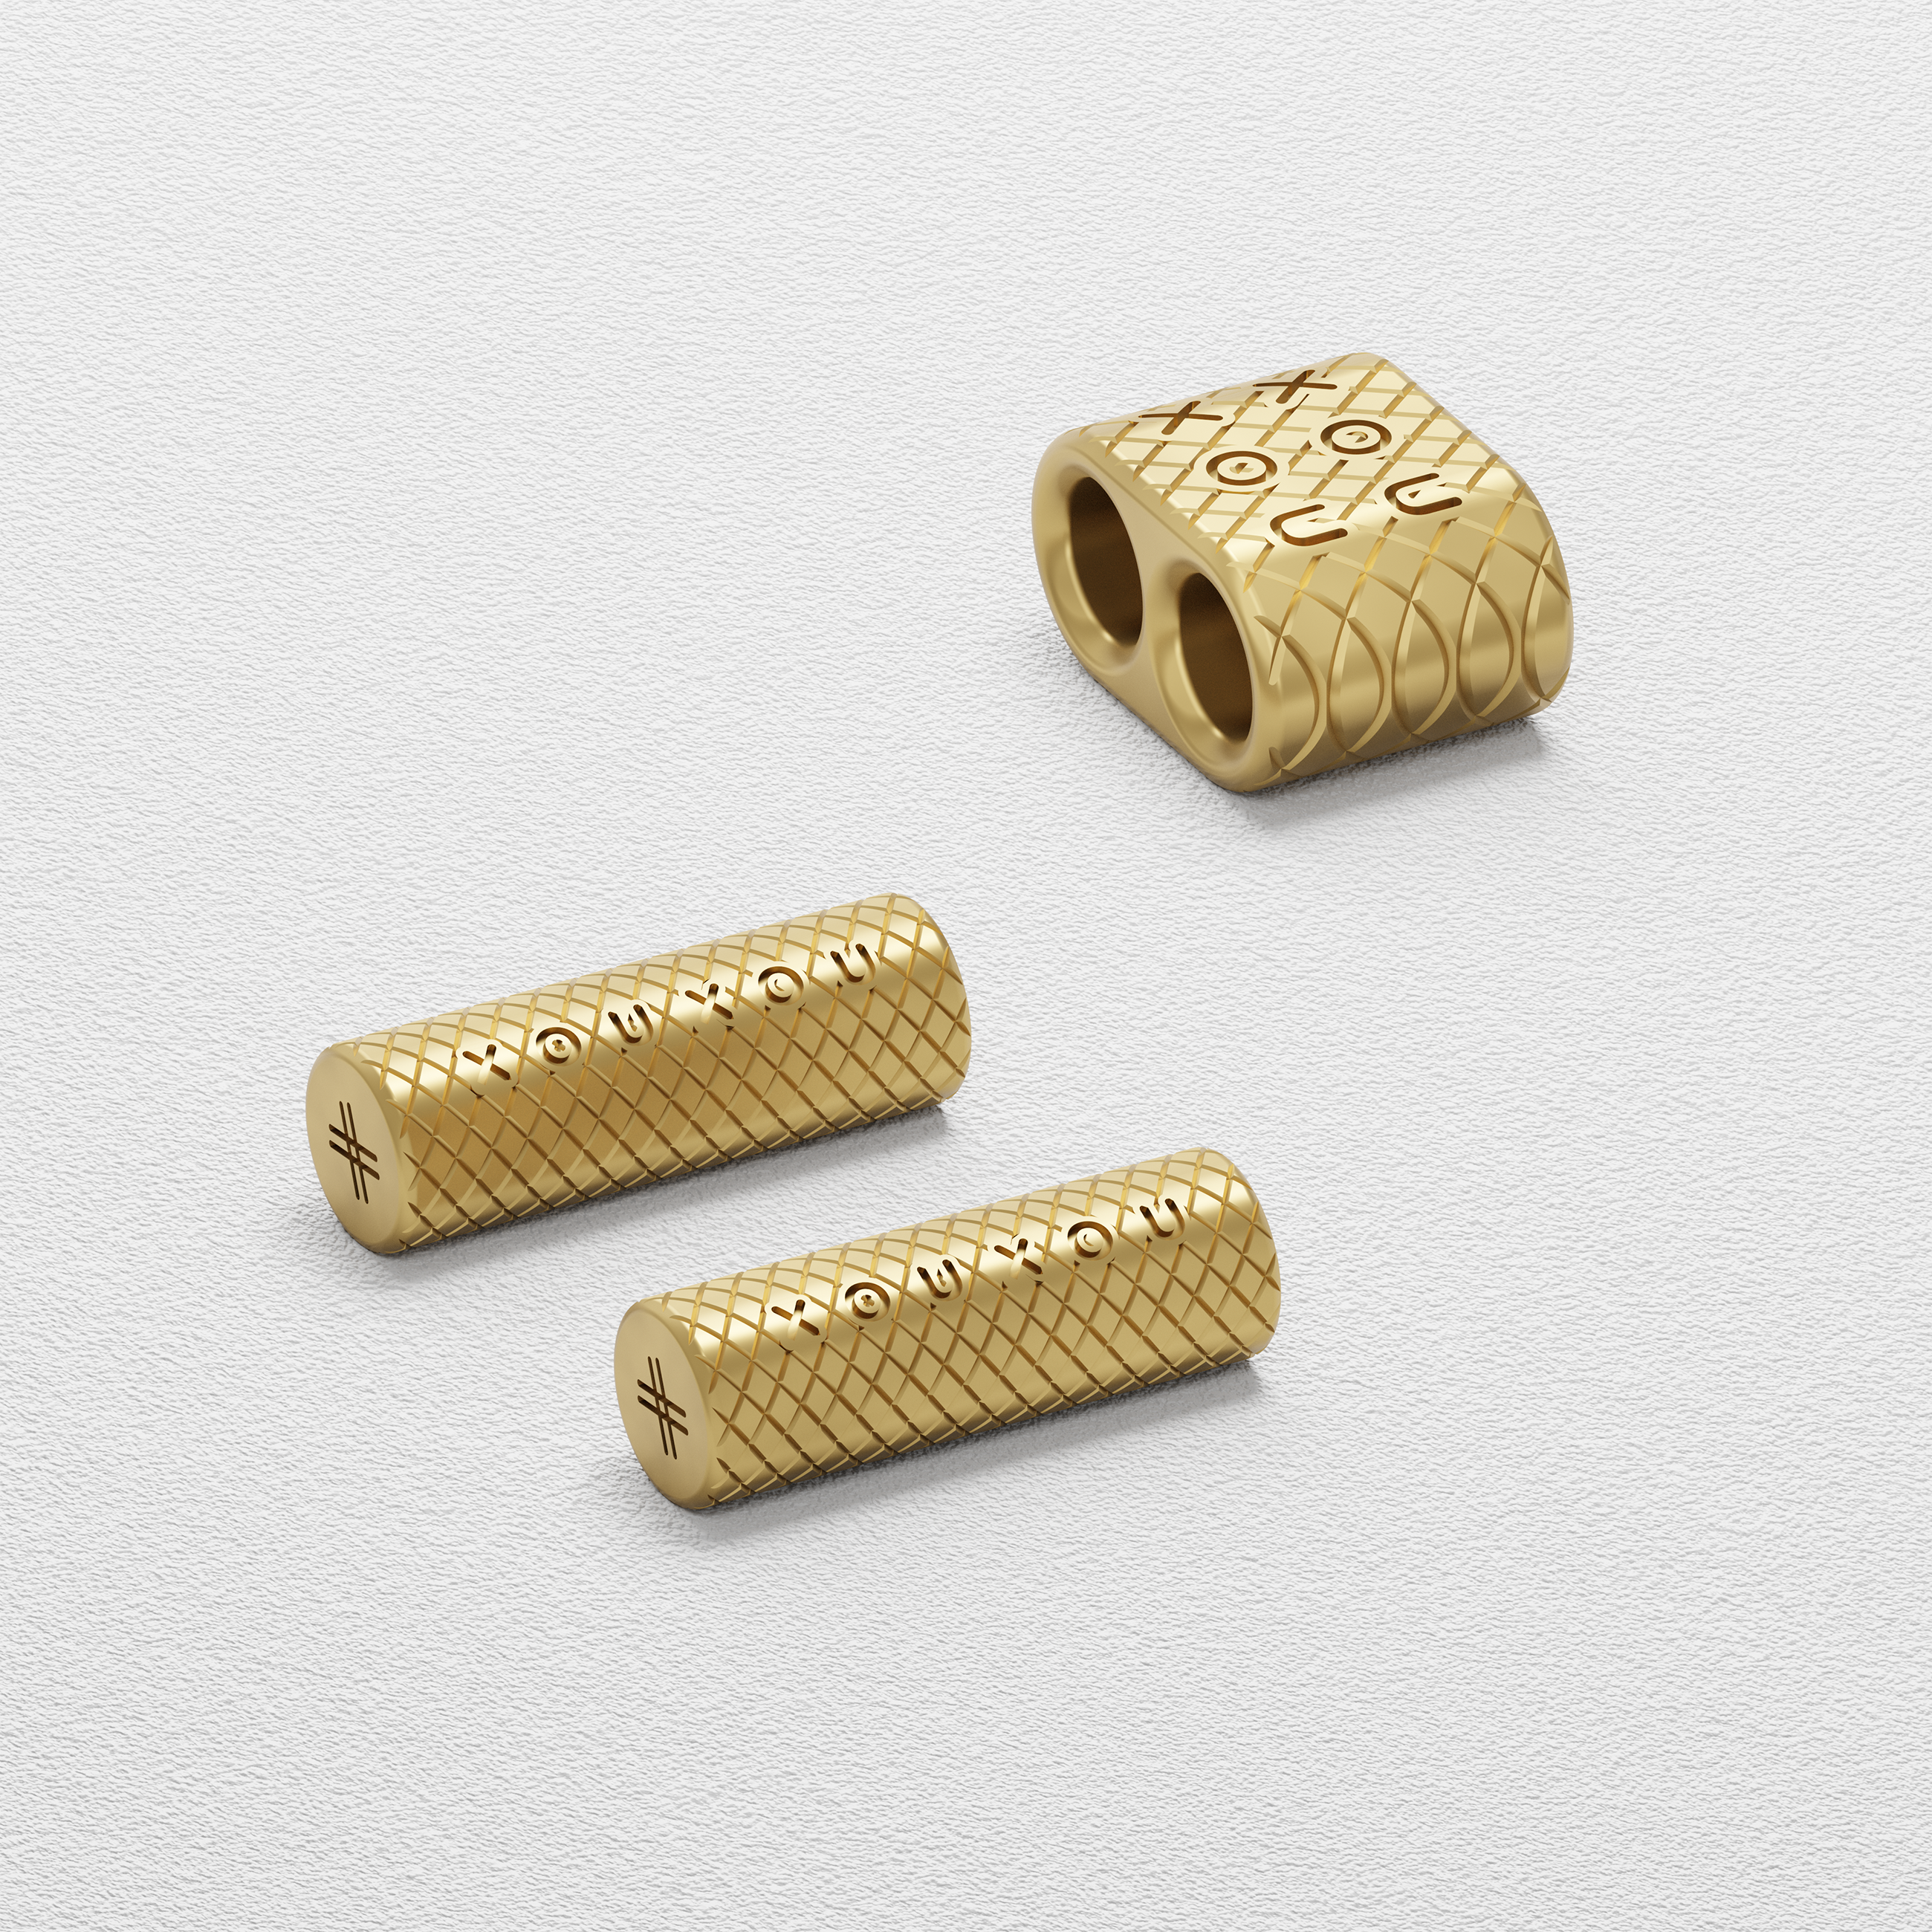 Brass Modular Rope Metal Parts